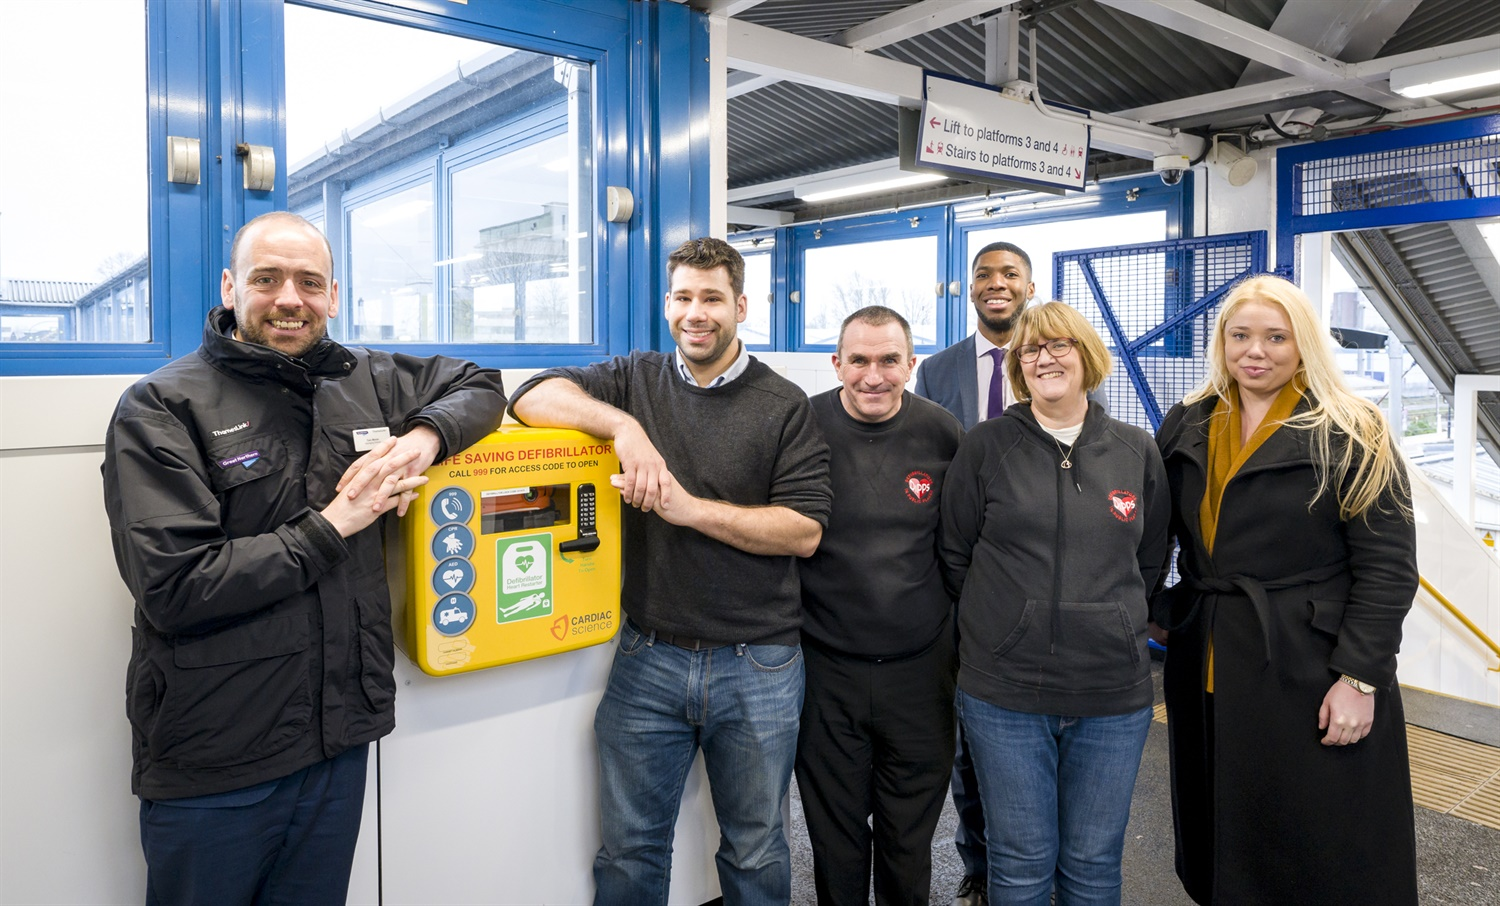 GTR start roll out of 200 more defibrillators in stations